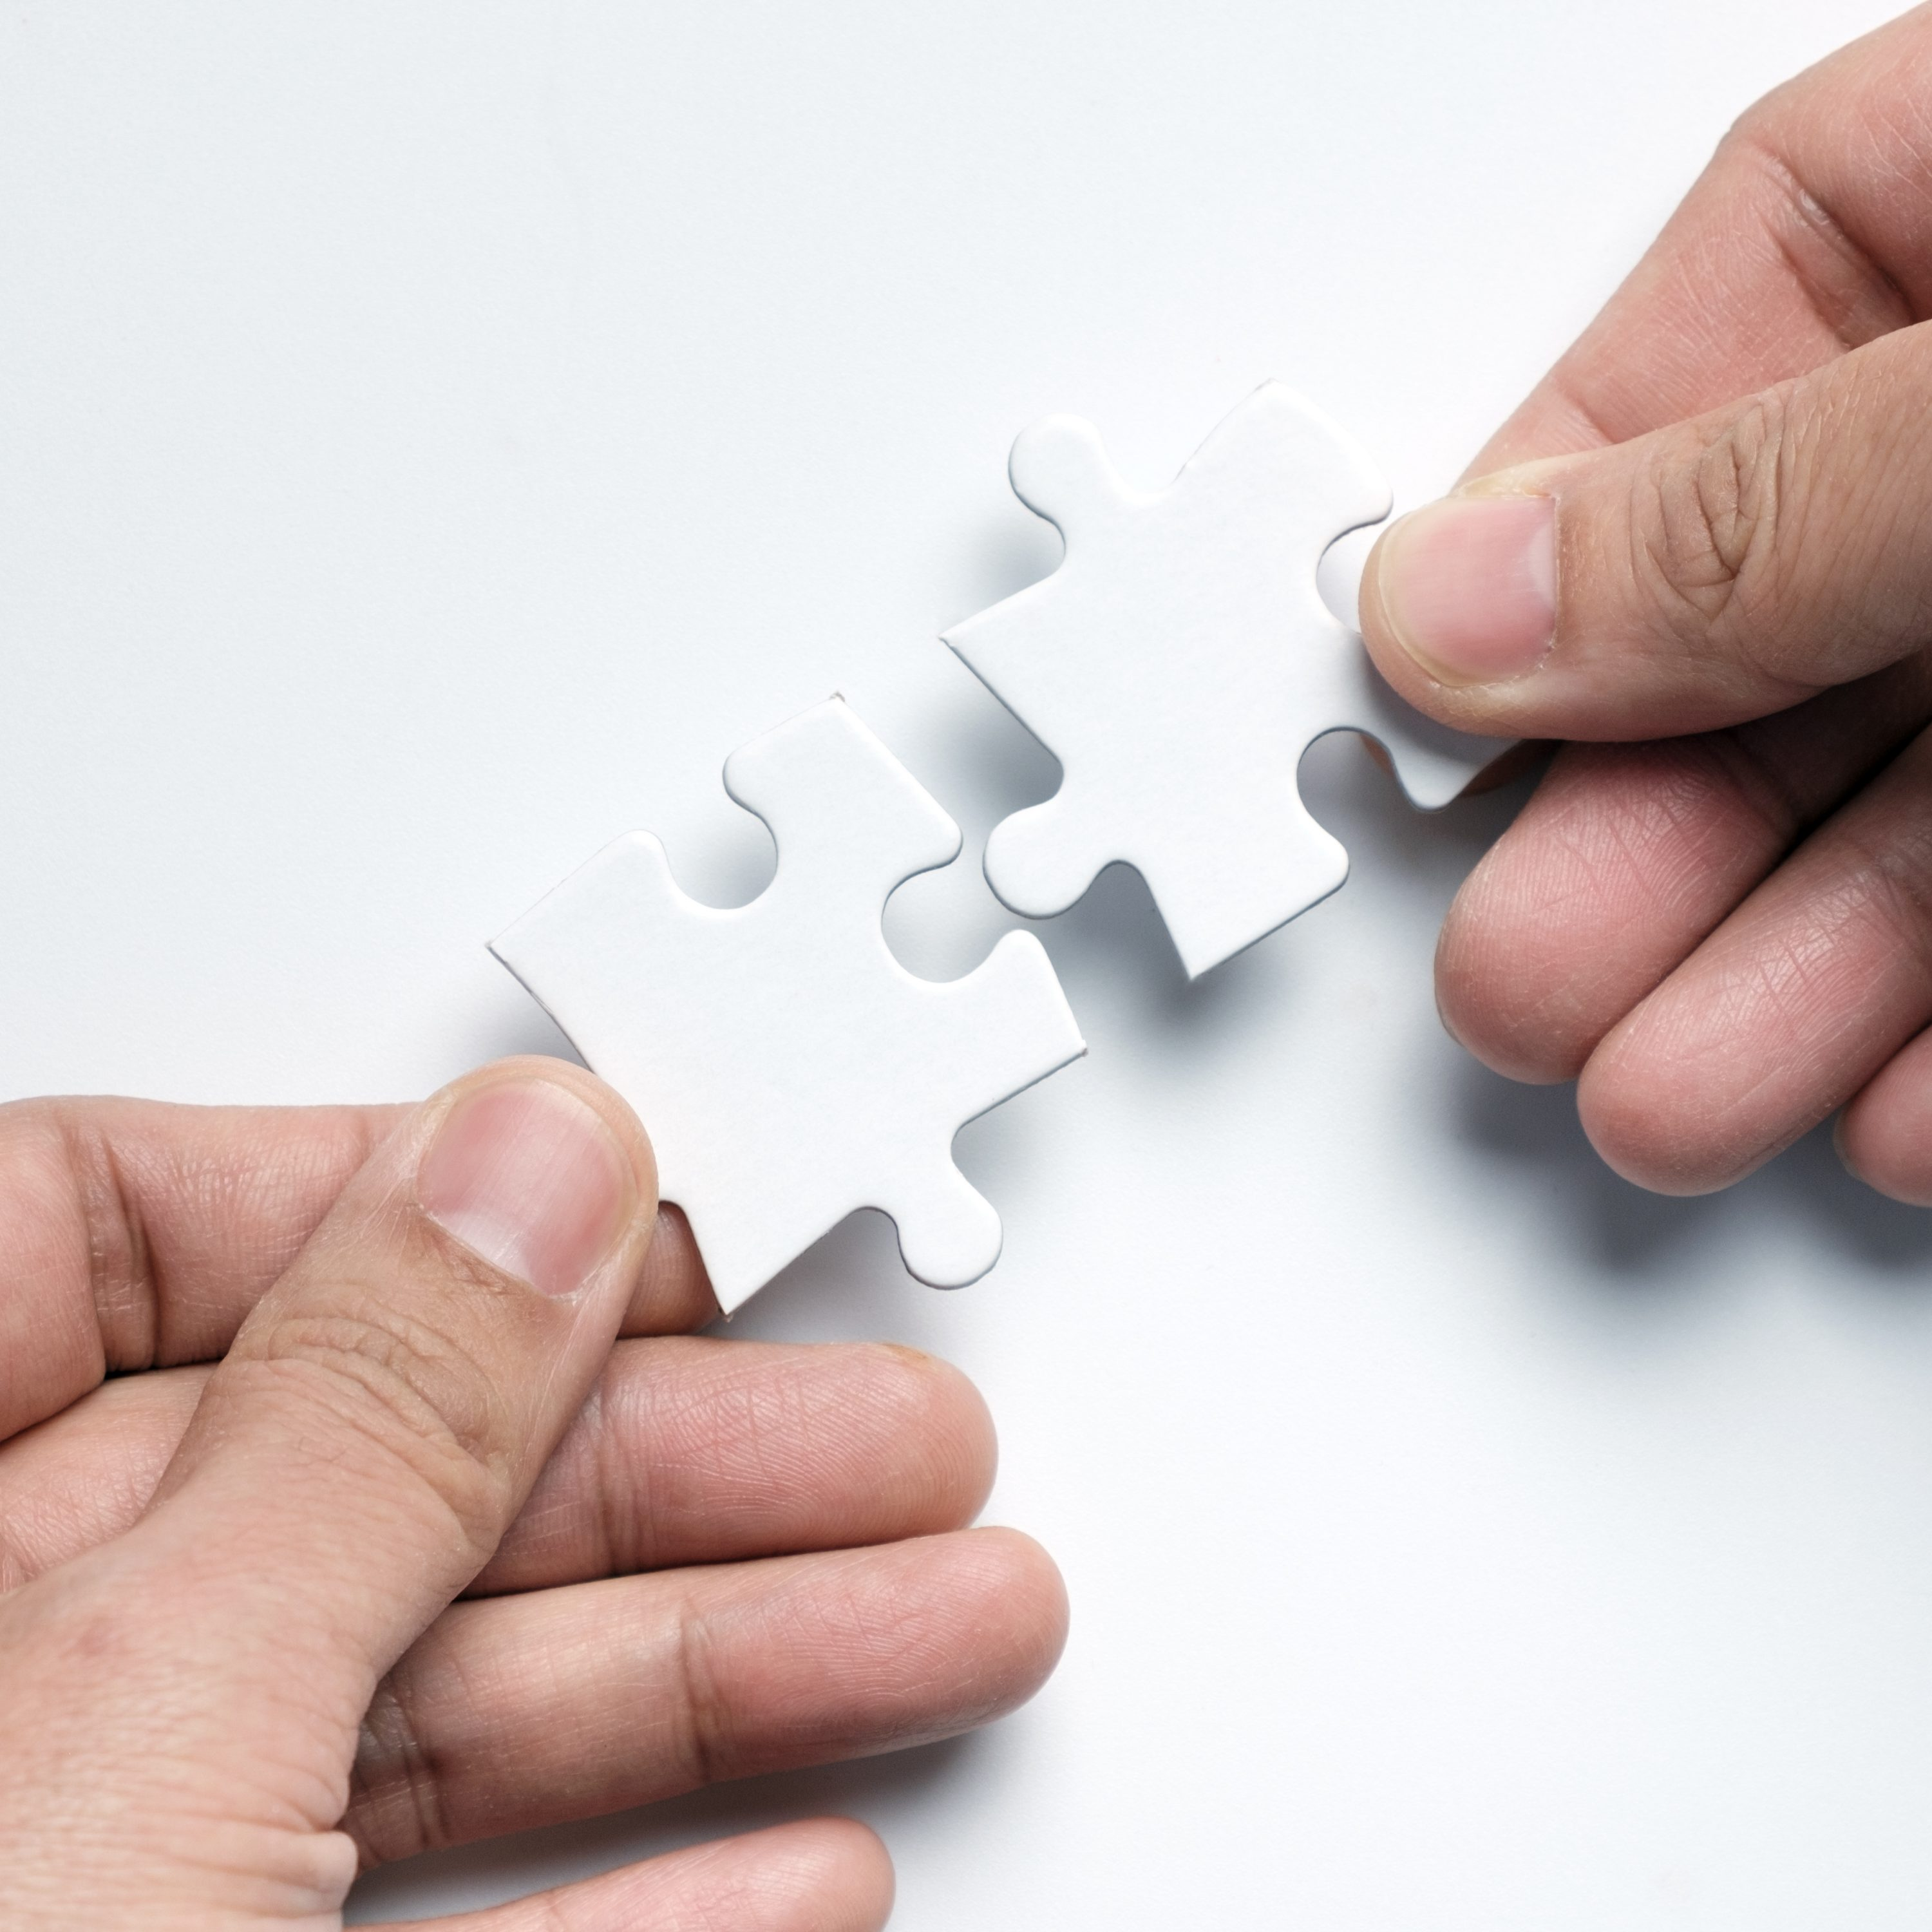 Partnership Concept With Hands Putting Puzzle Pieces Together On